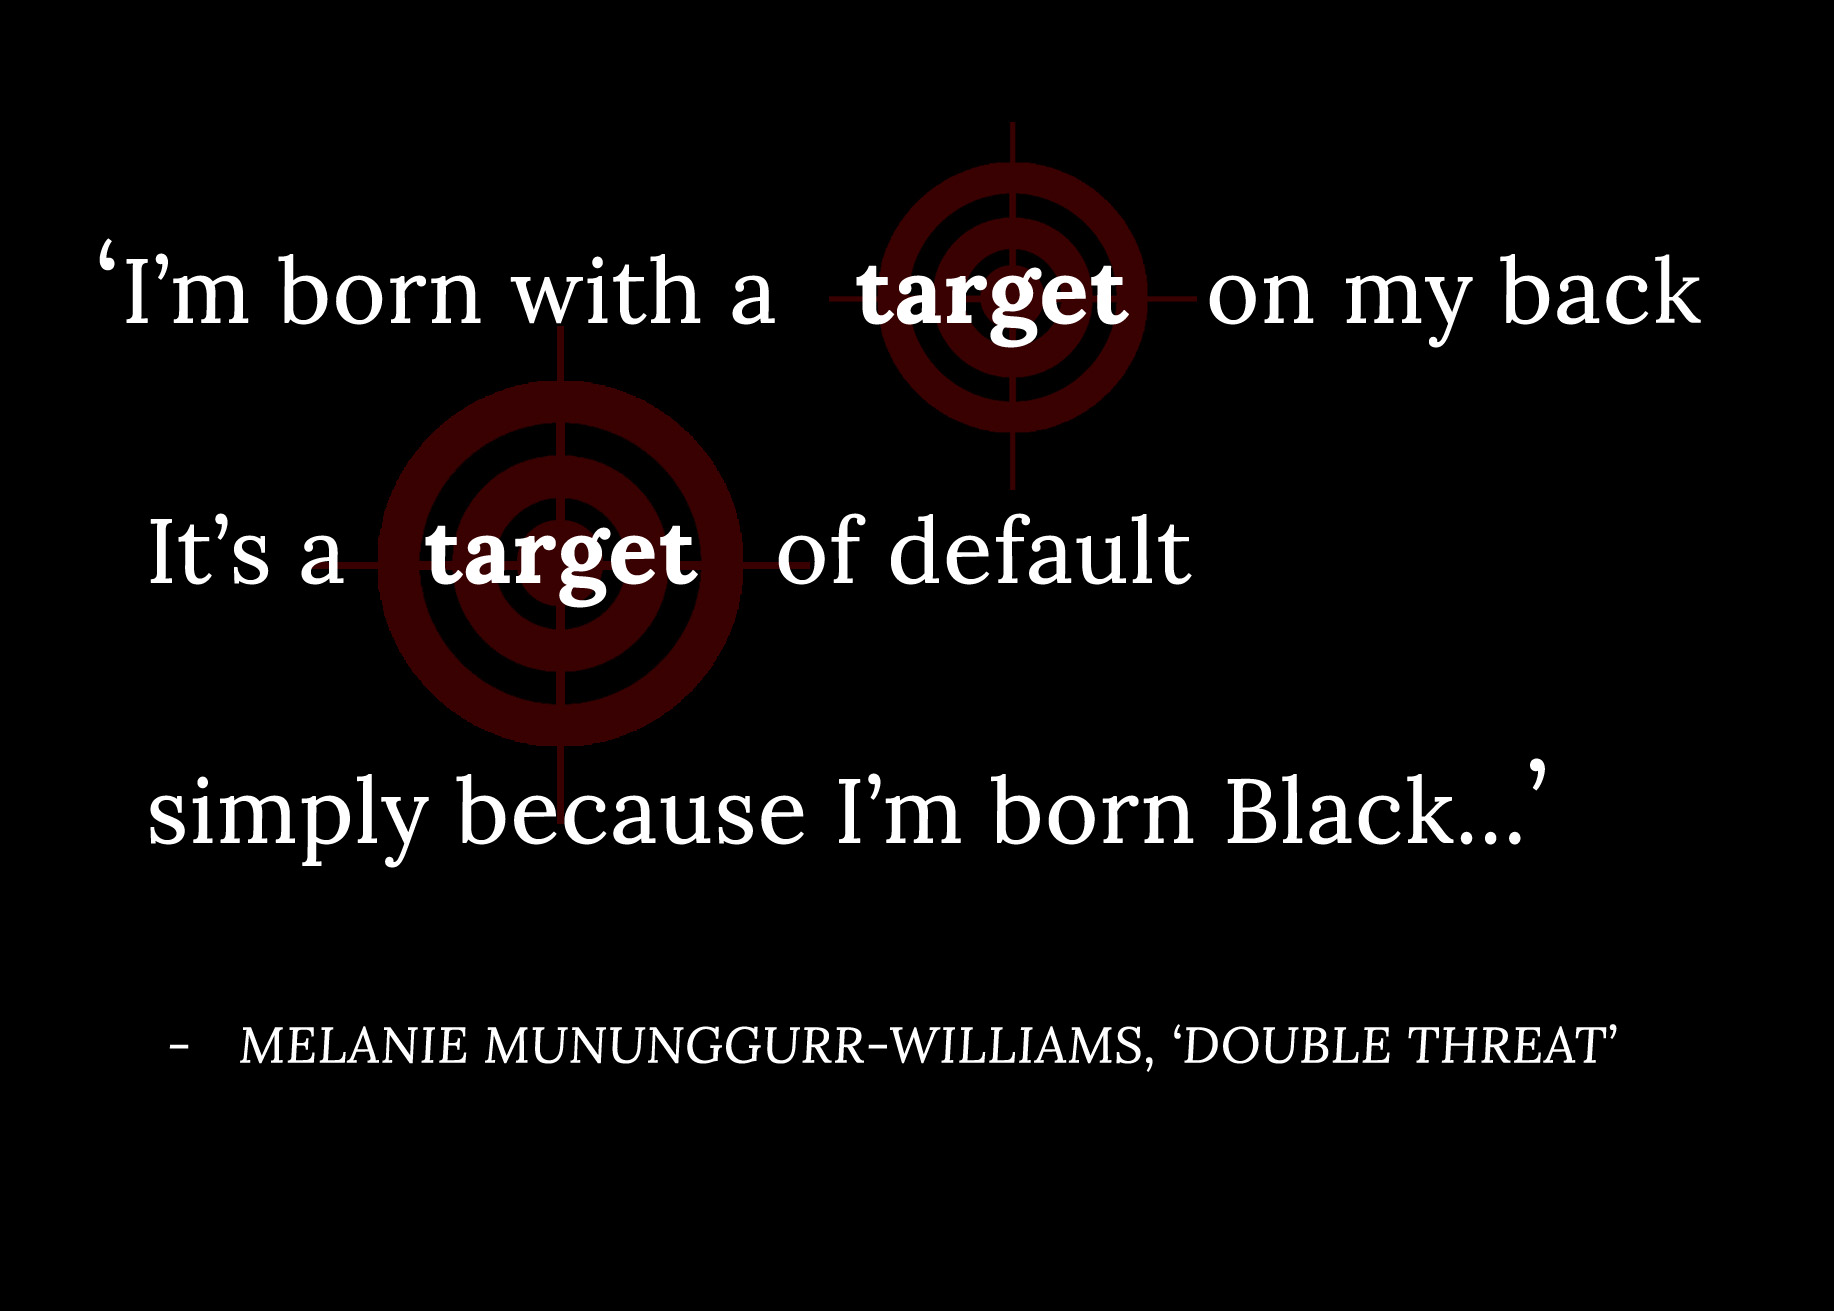 Excerpt from the poem 'Double Threat' by Melanie Mununggurr-Williams, it reads 'I'm born with a target on my back / It's a target of default / simply because I'm born Black...'. Behind the text are two red target symbols.